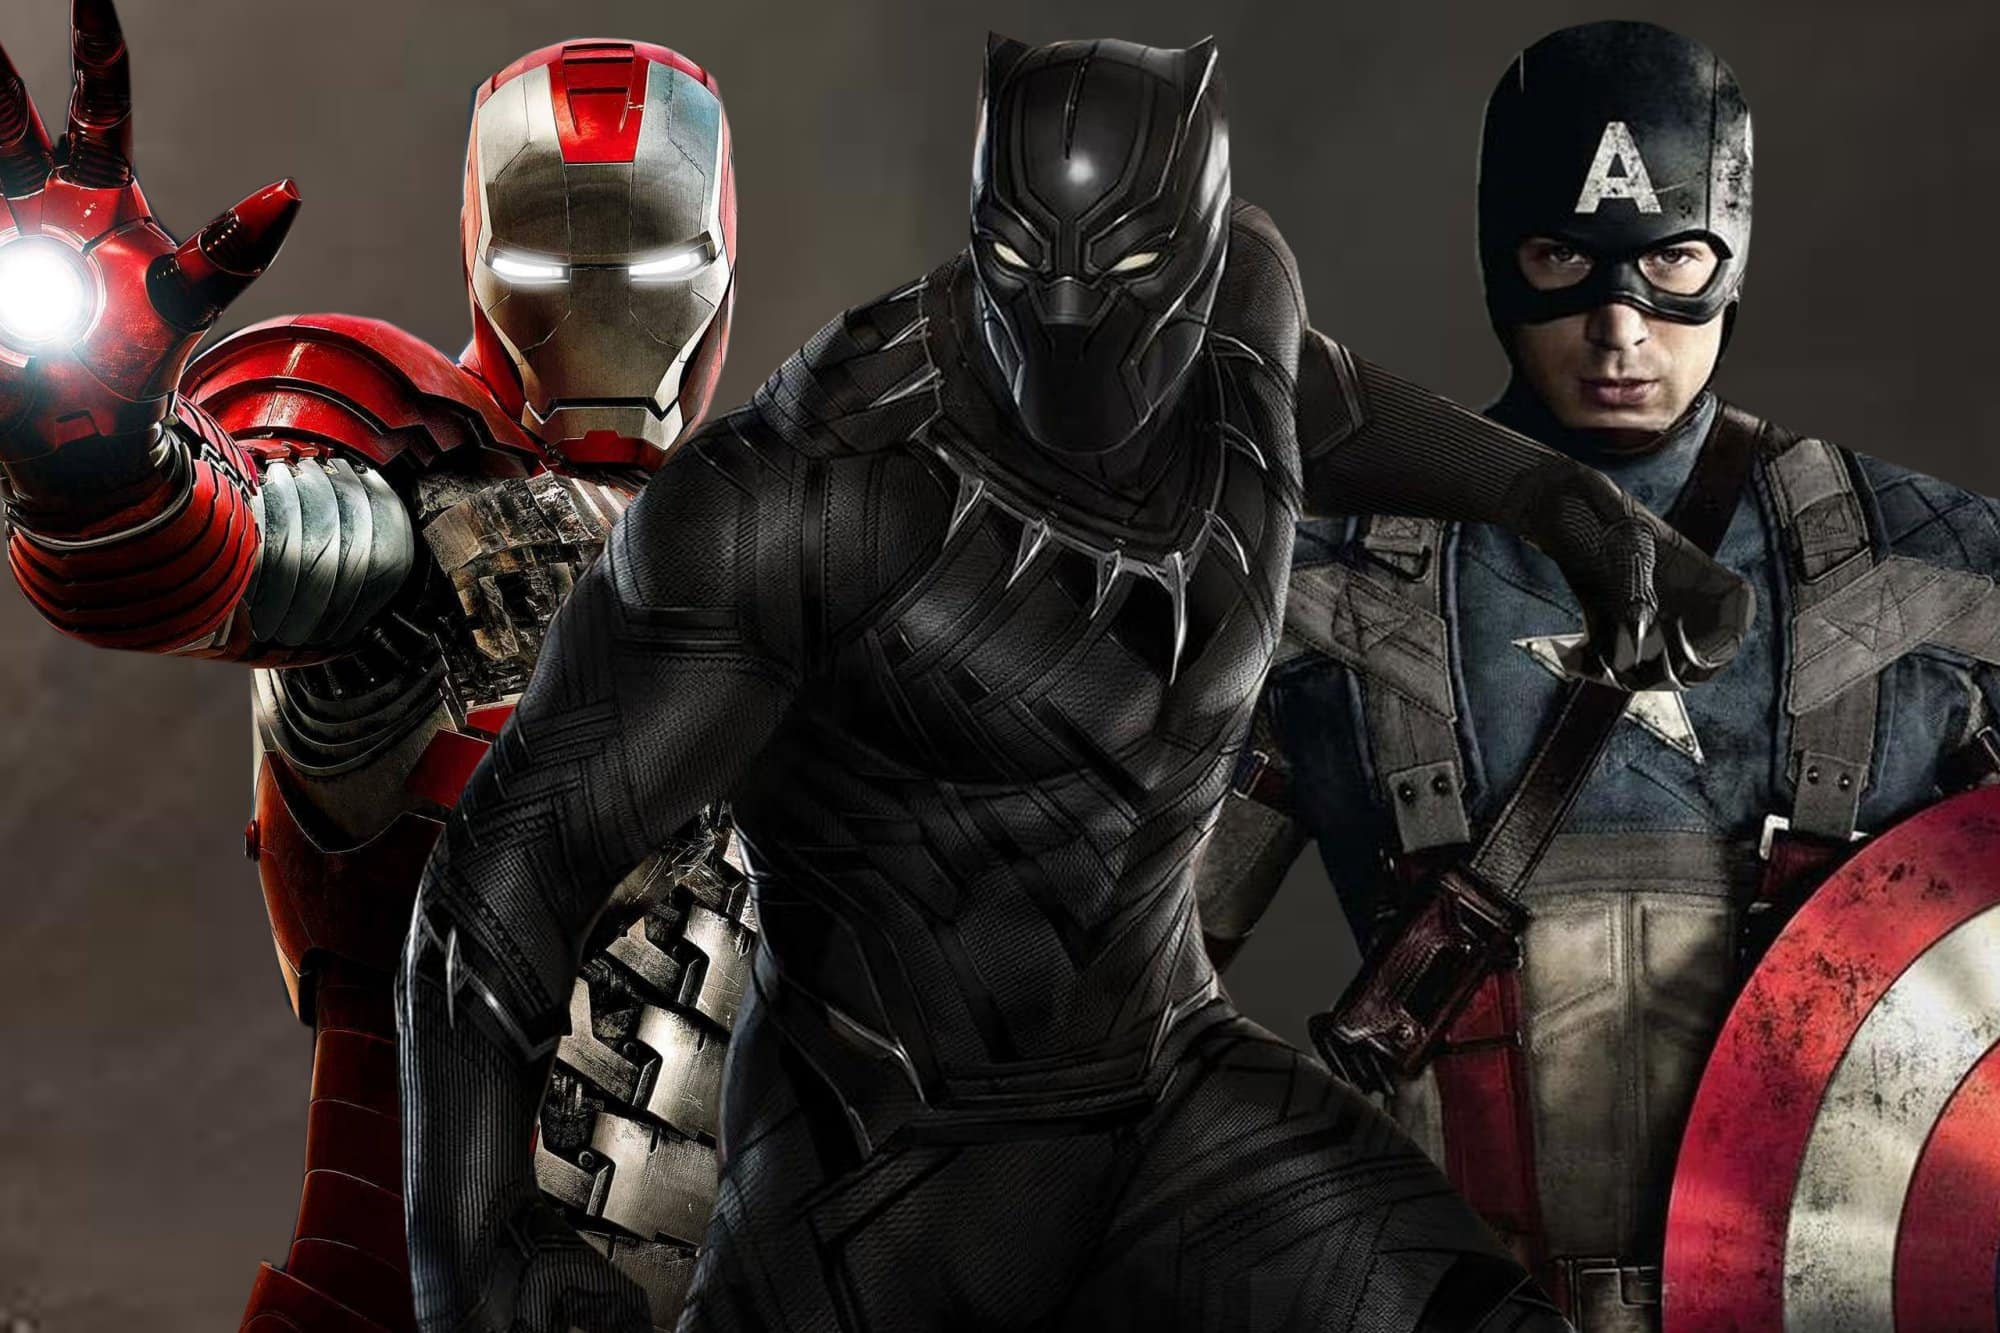 BLACK PANTHER Casting Call Reveals Interesting Marvel Characters